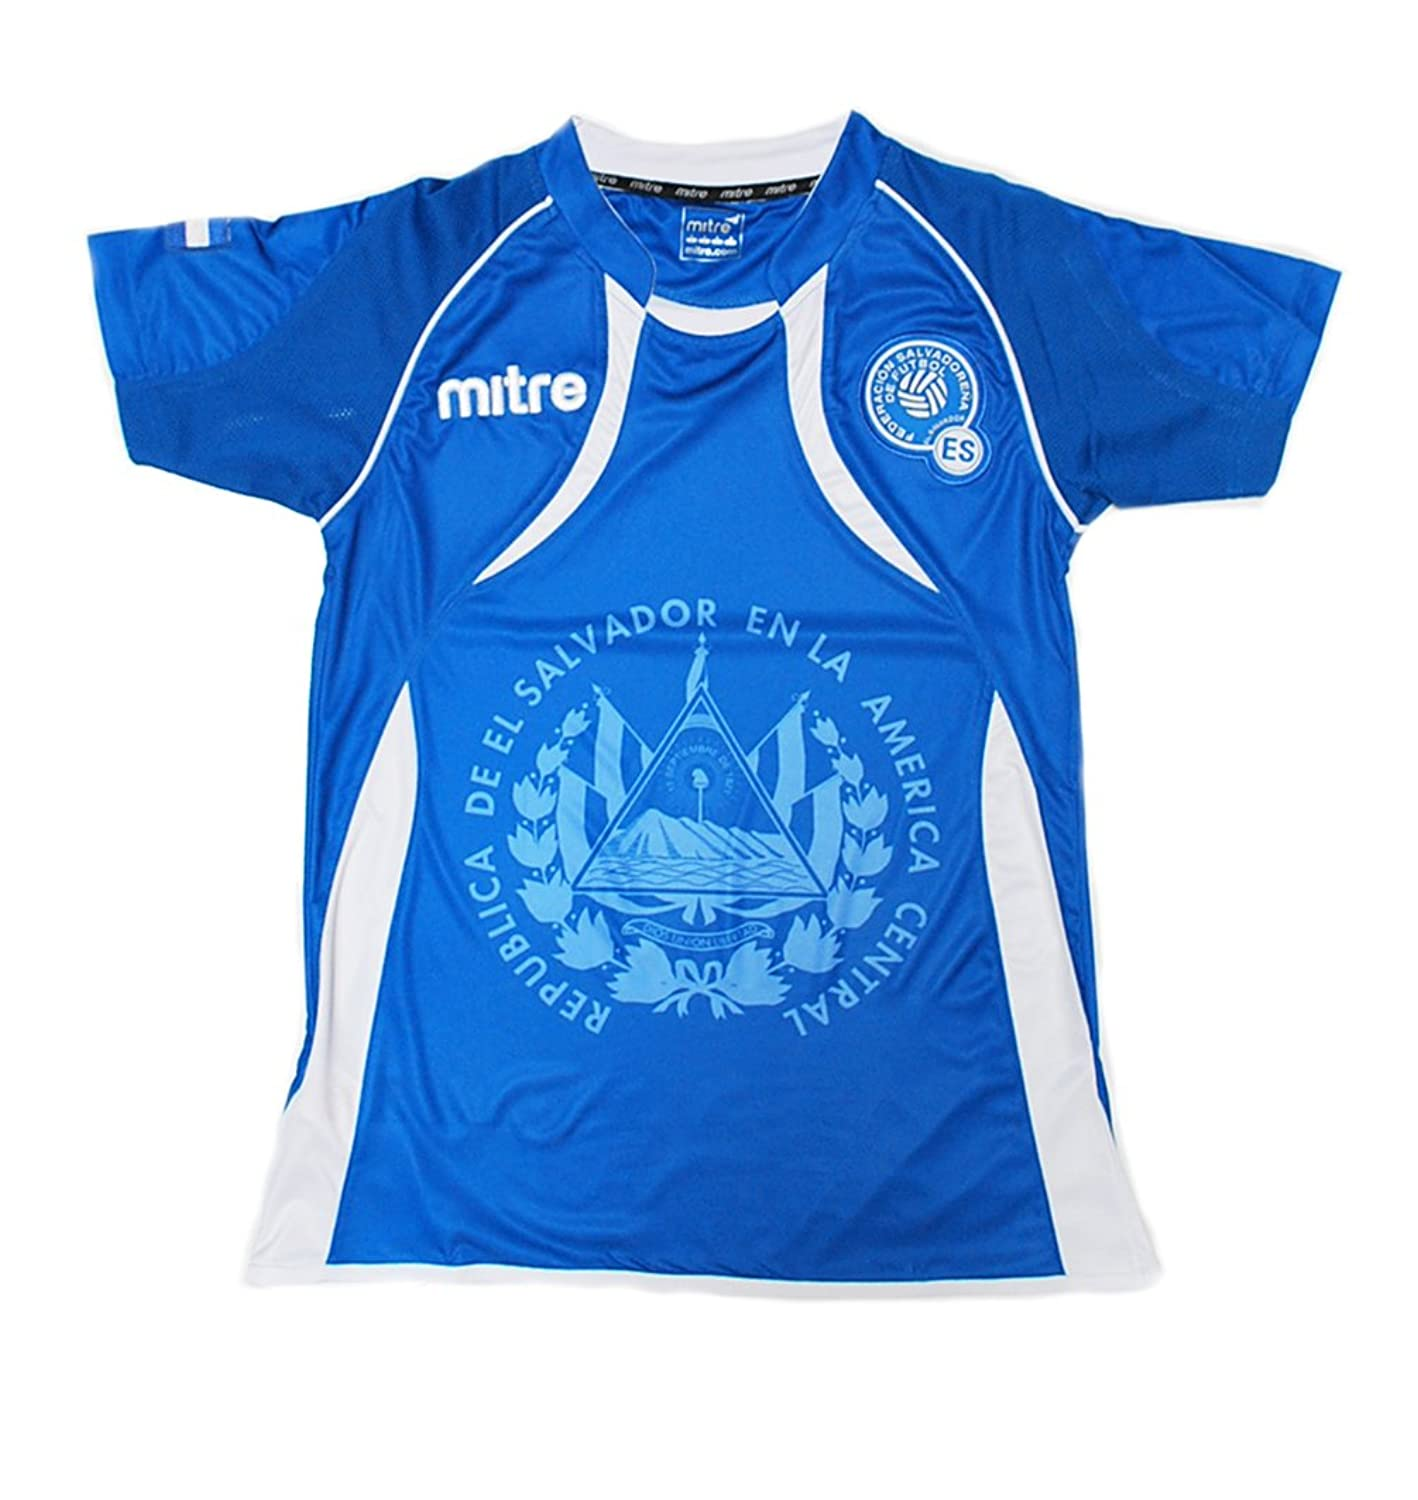 e025014c2 ... Soccer Jersey Exclusive Design Clothing Amazon.com El Salvador Home  Womens (XS) Clothing ...